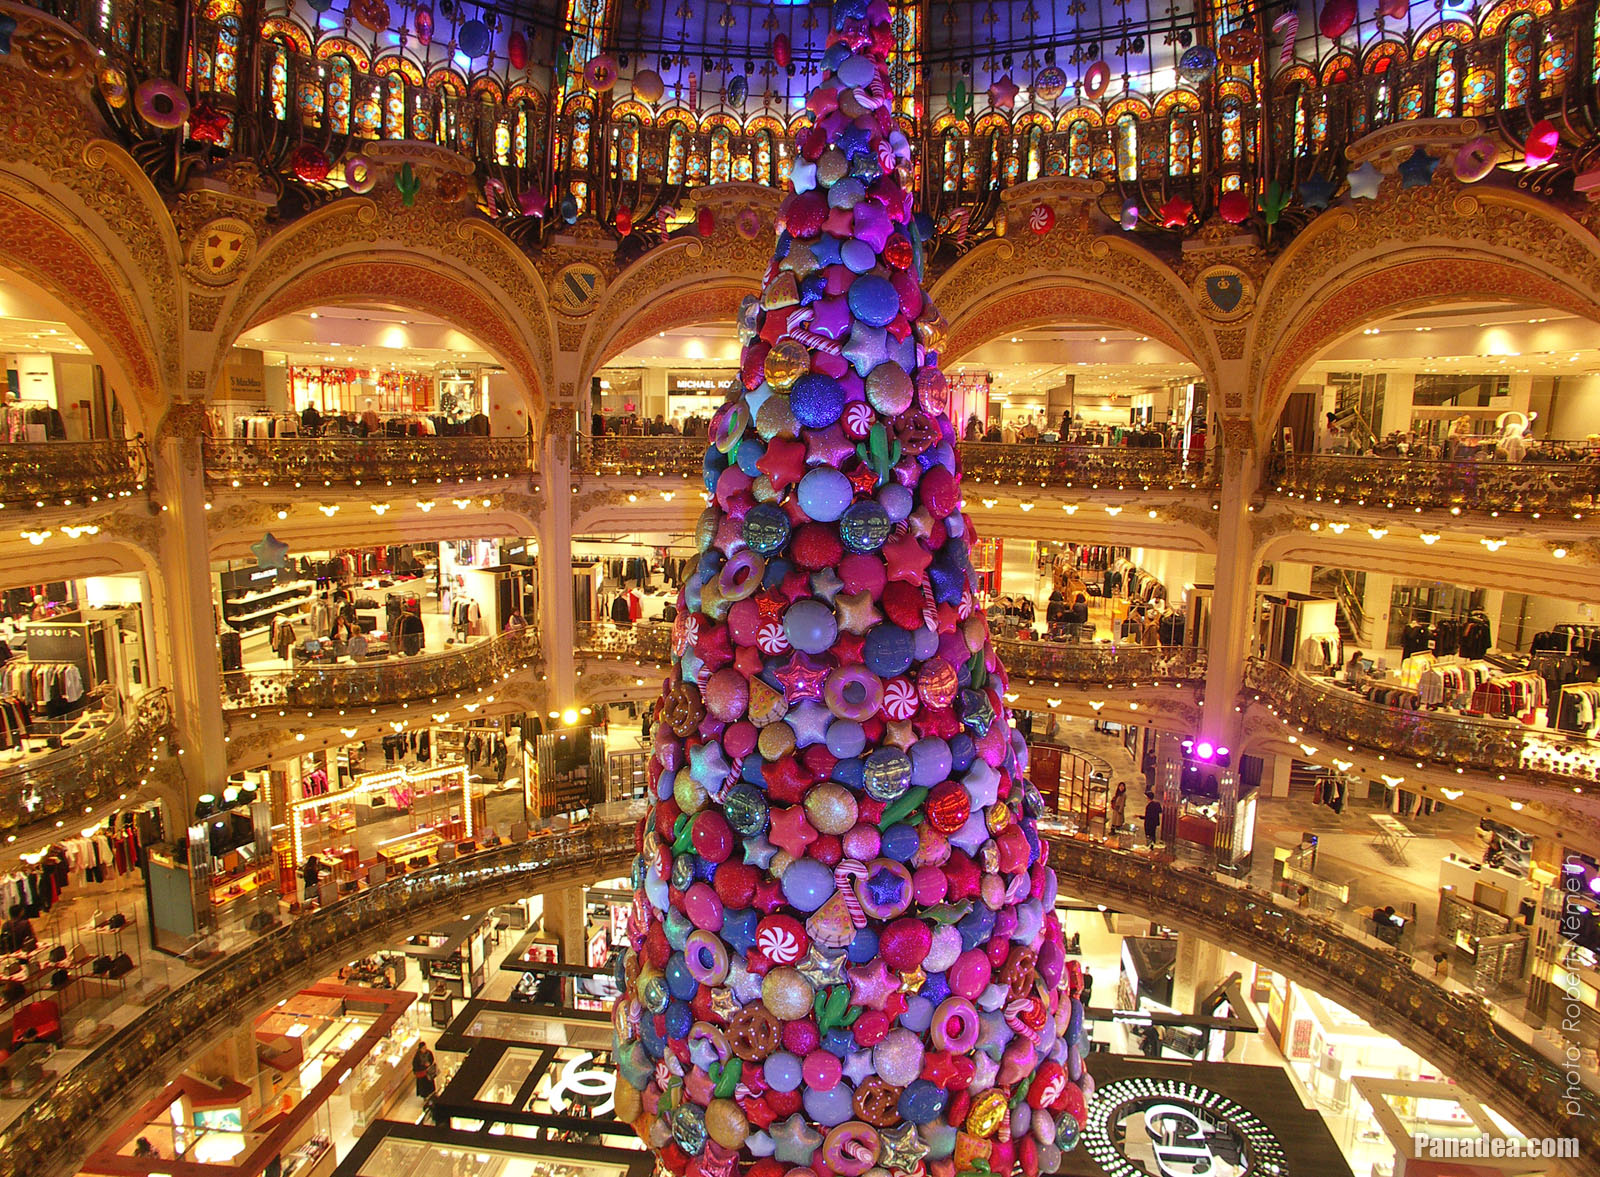 Christmas Paris France.Panadea Travel Guide Photo Gallery Galeries Lafayette